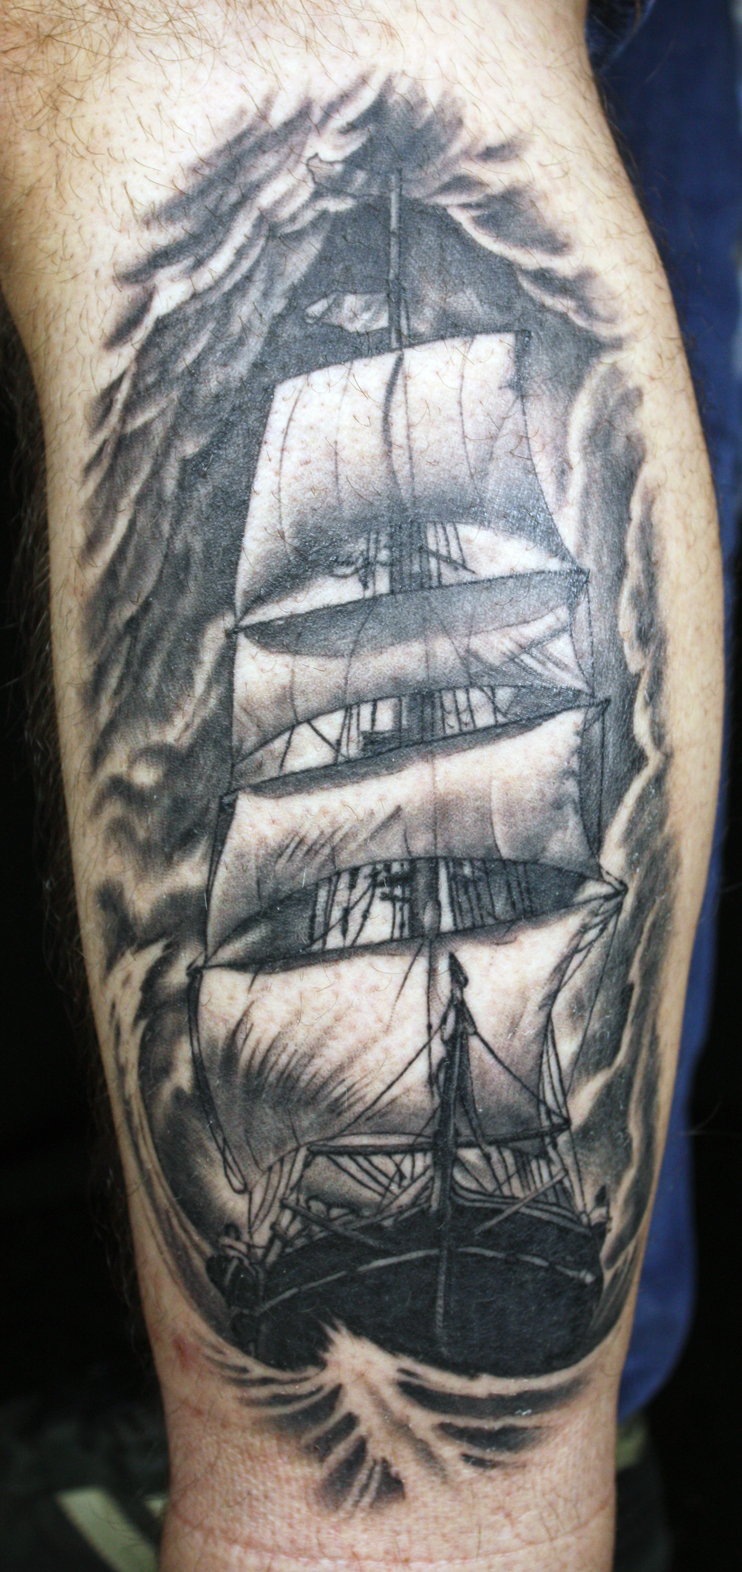 Healed ship on the side of the leg